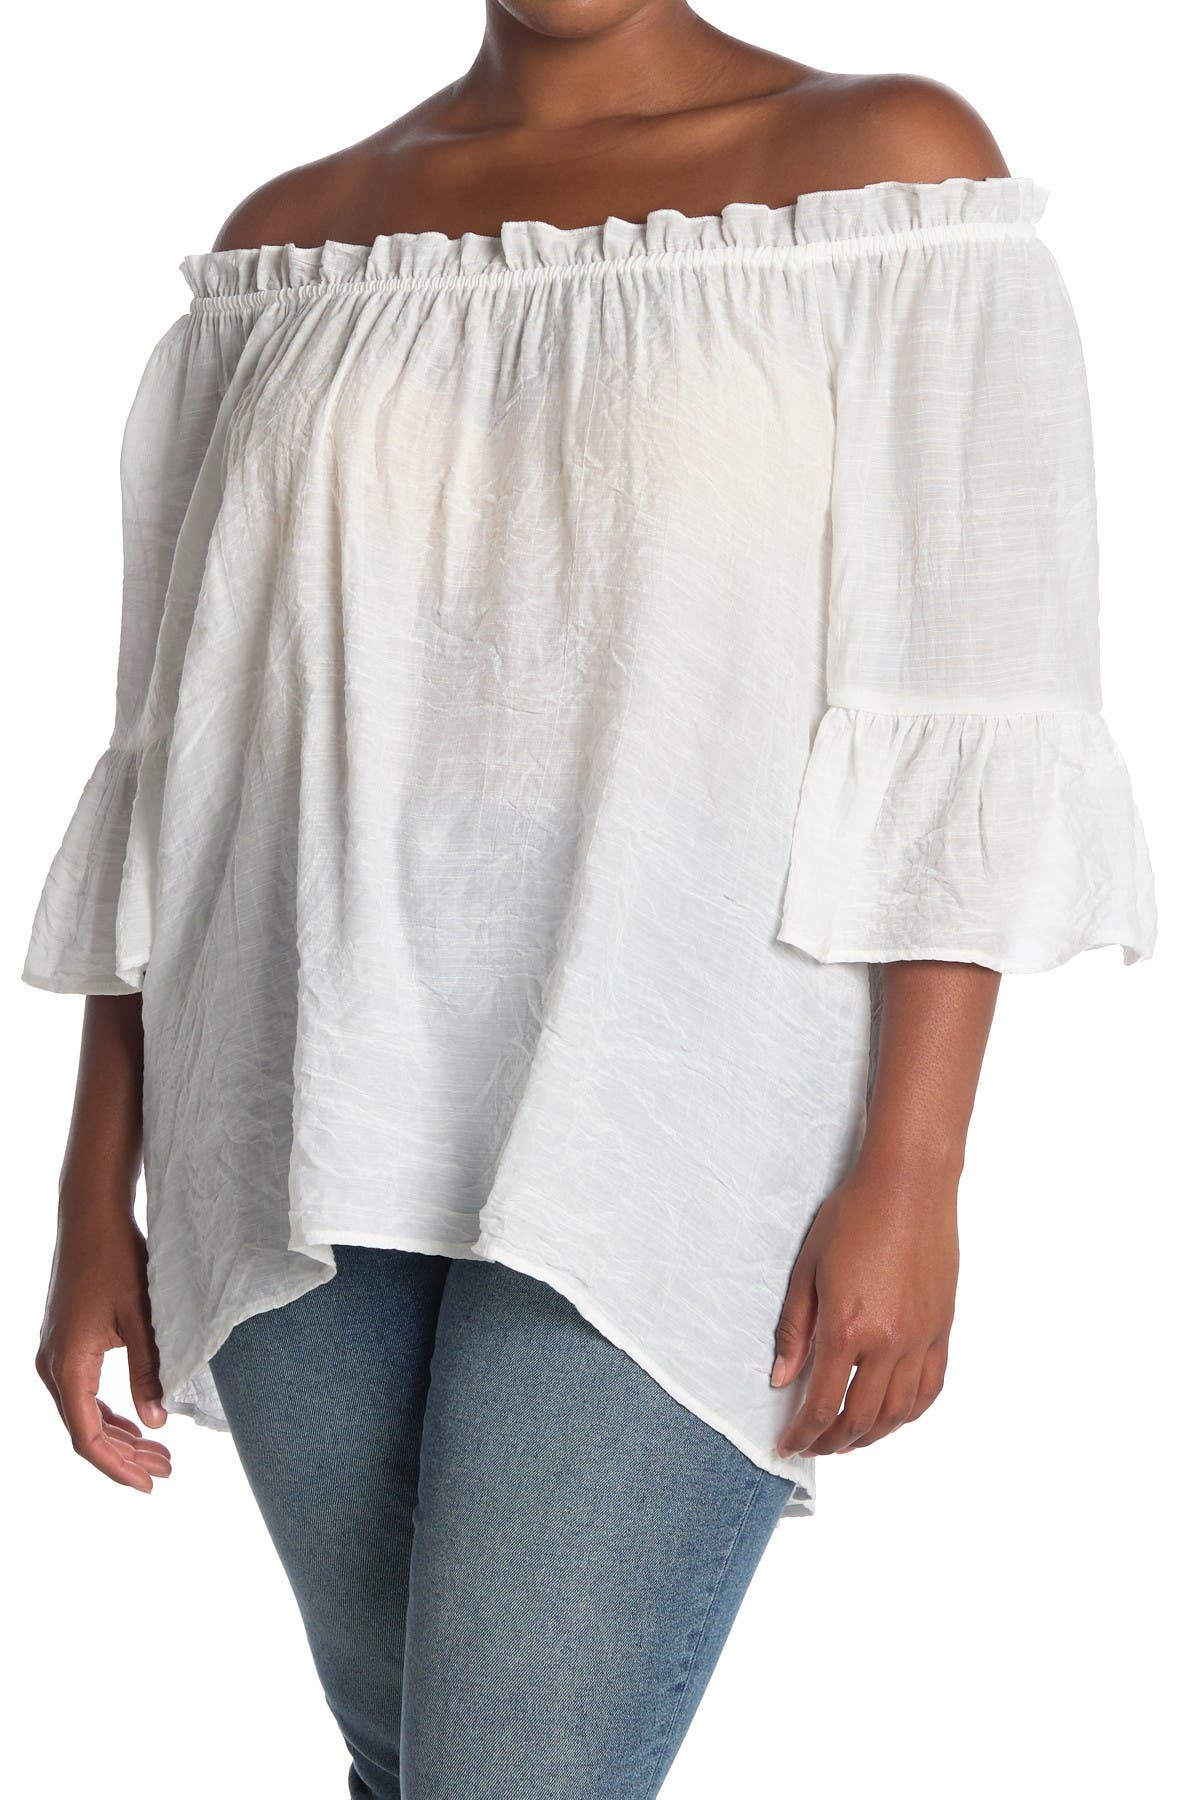 Forgotten Grace Off-the-Shoulder High/Low Peasant Top at Nordstrom Rack